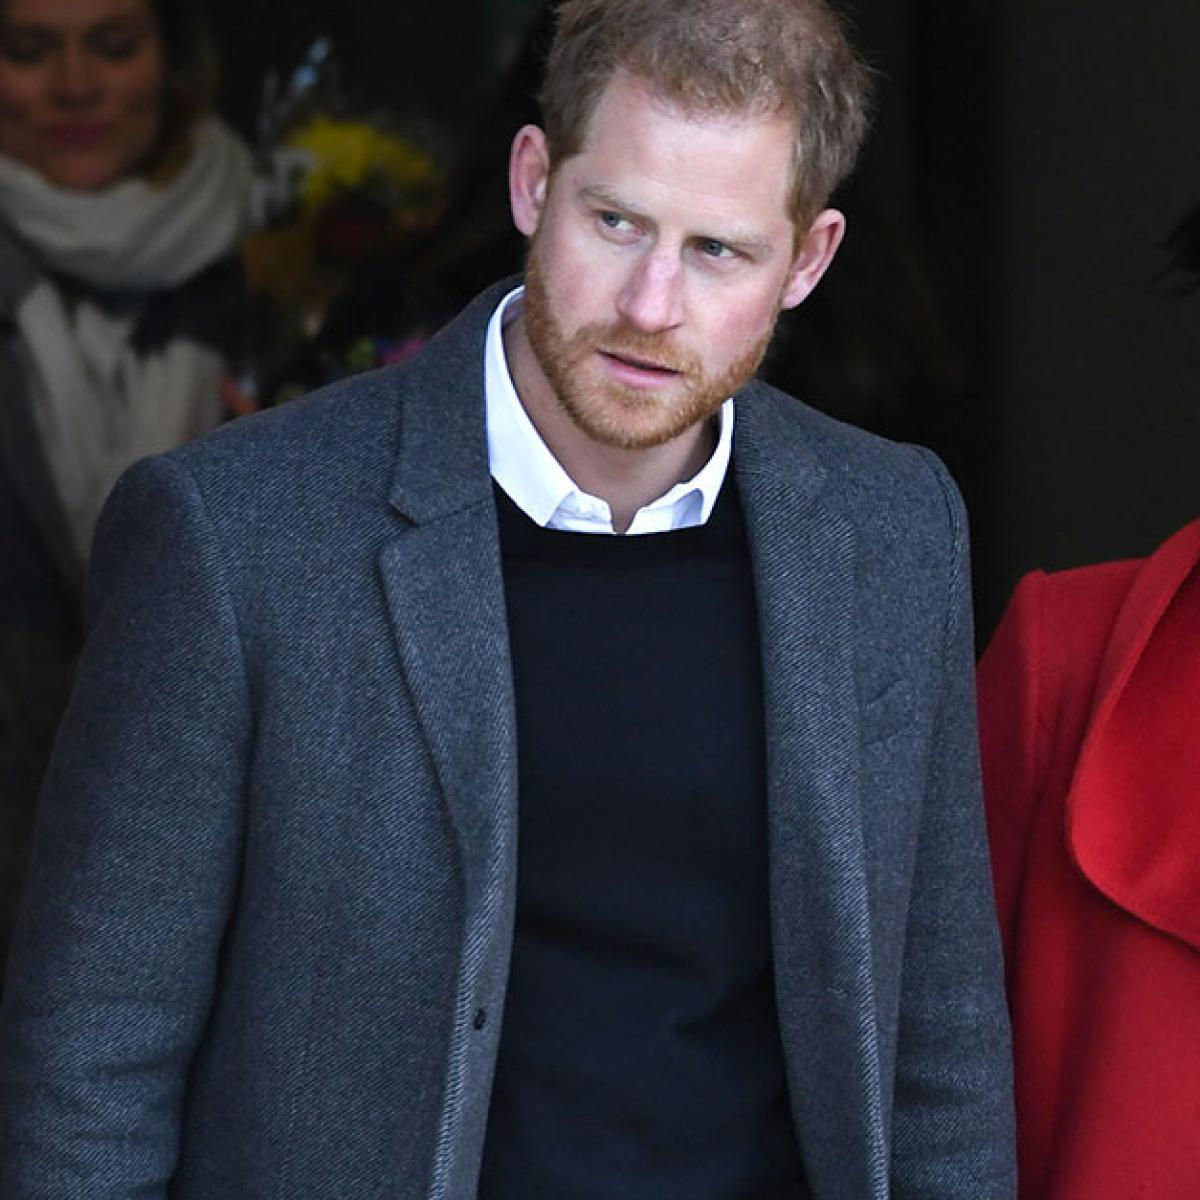 ed26503eec4 Prince Harry And Meghan Markle Confirm Their Baby's Due Date